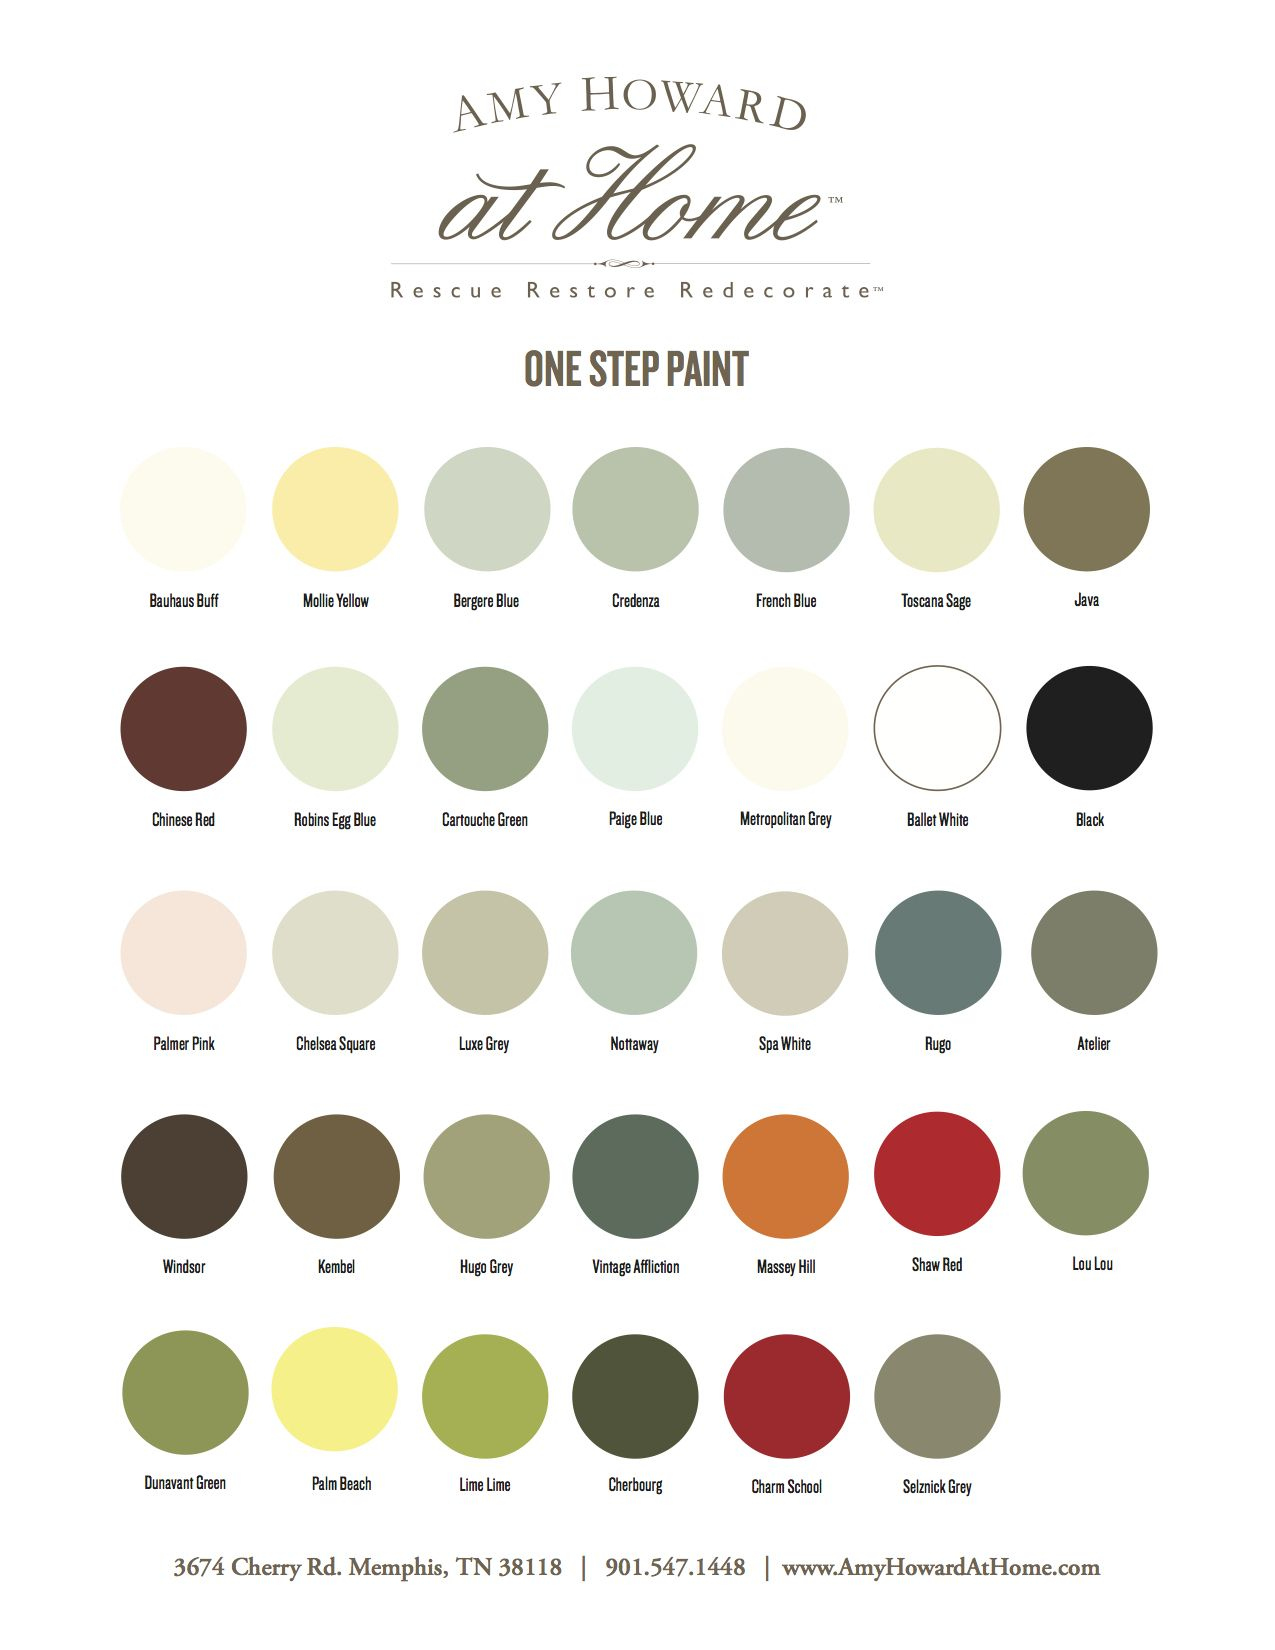 Amy Howard One Step Paint Swatches